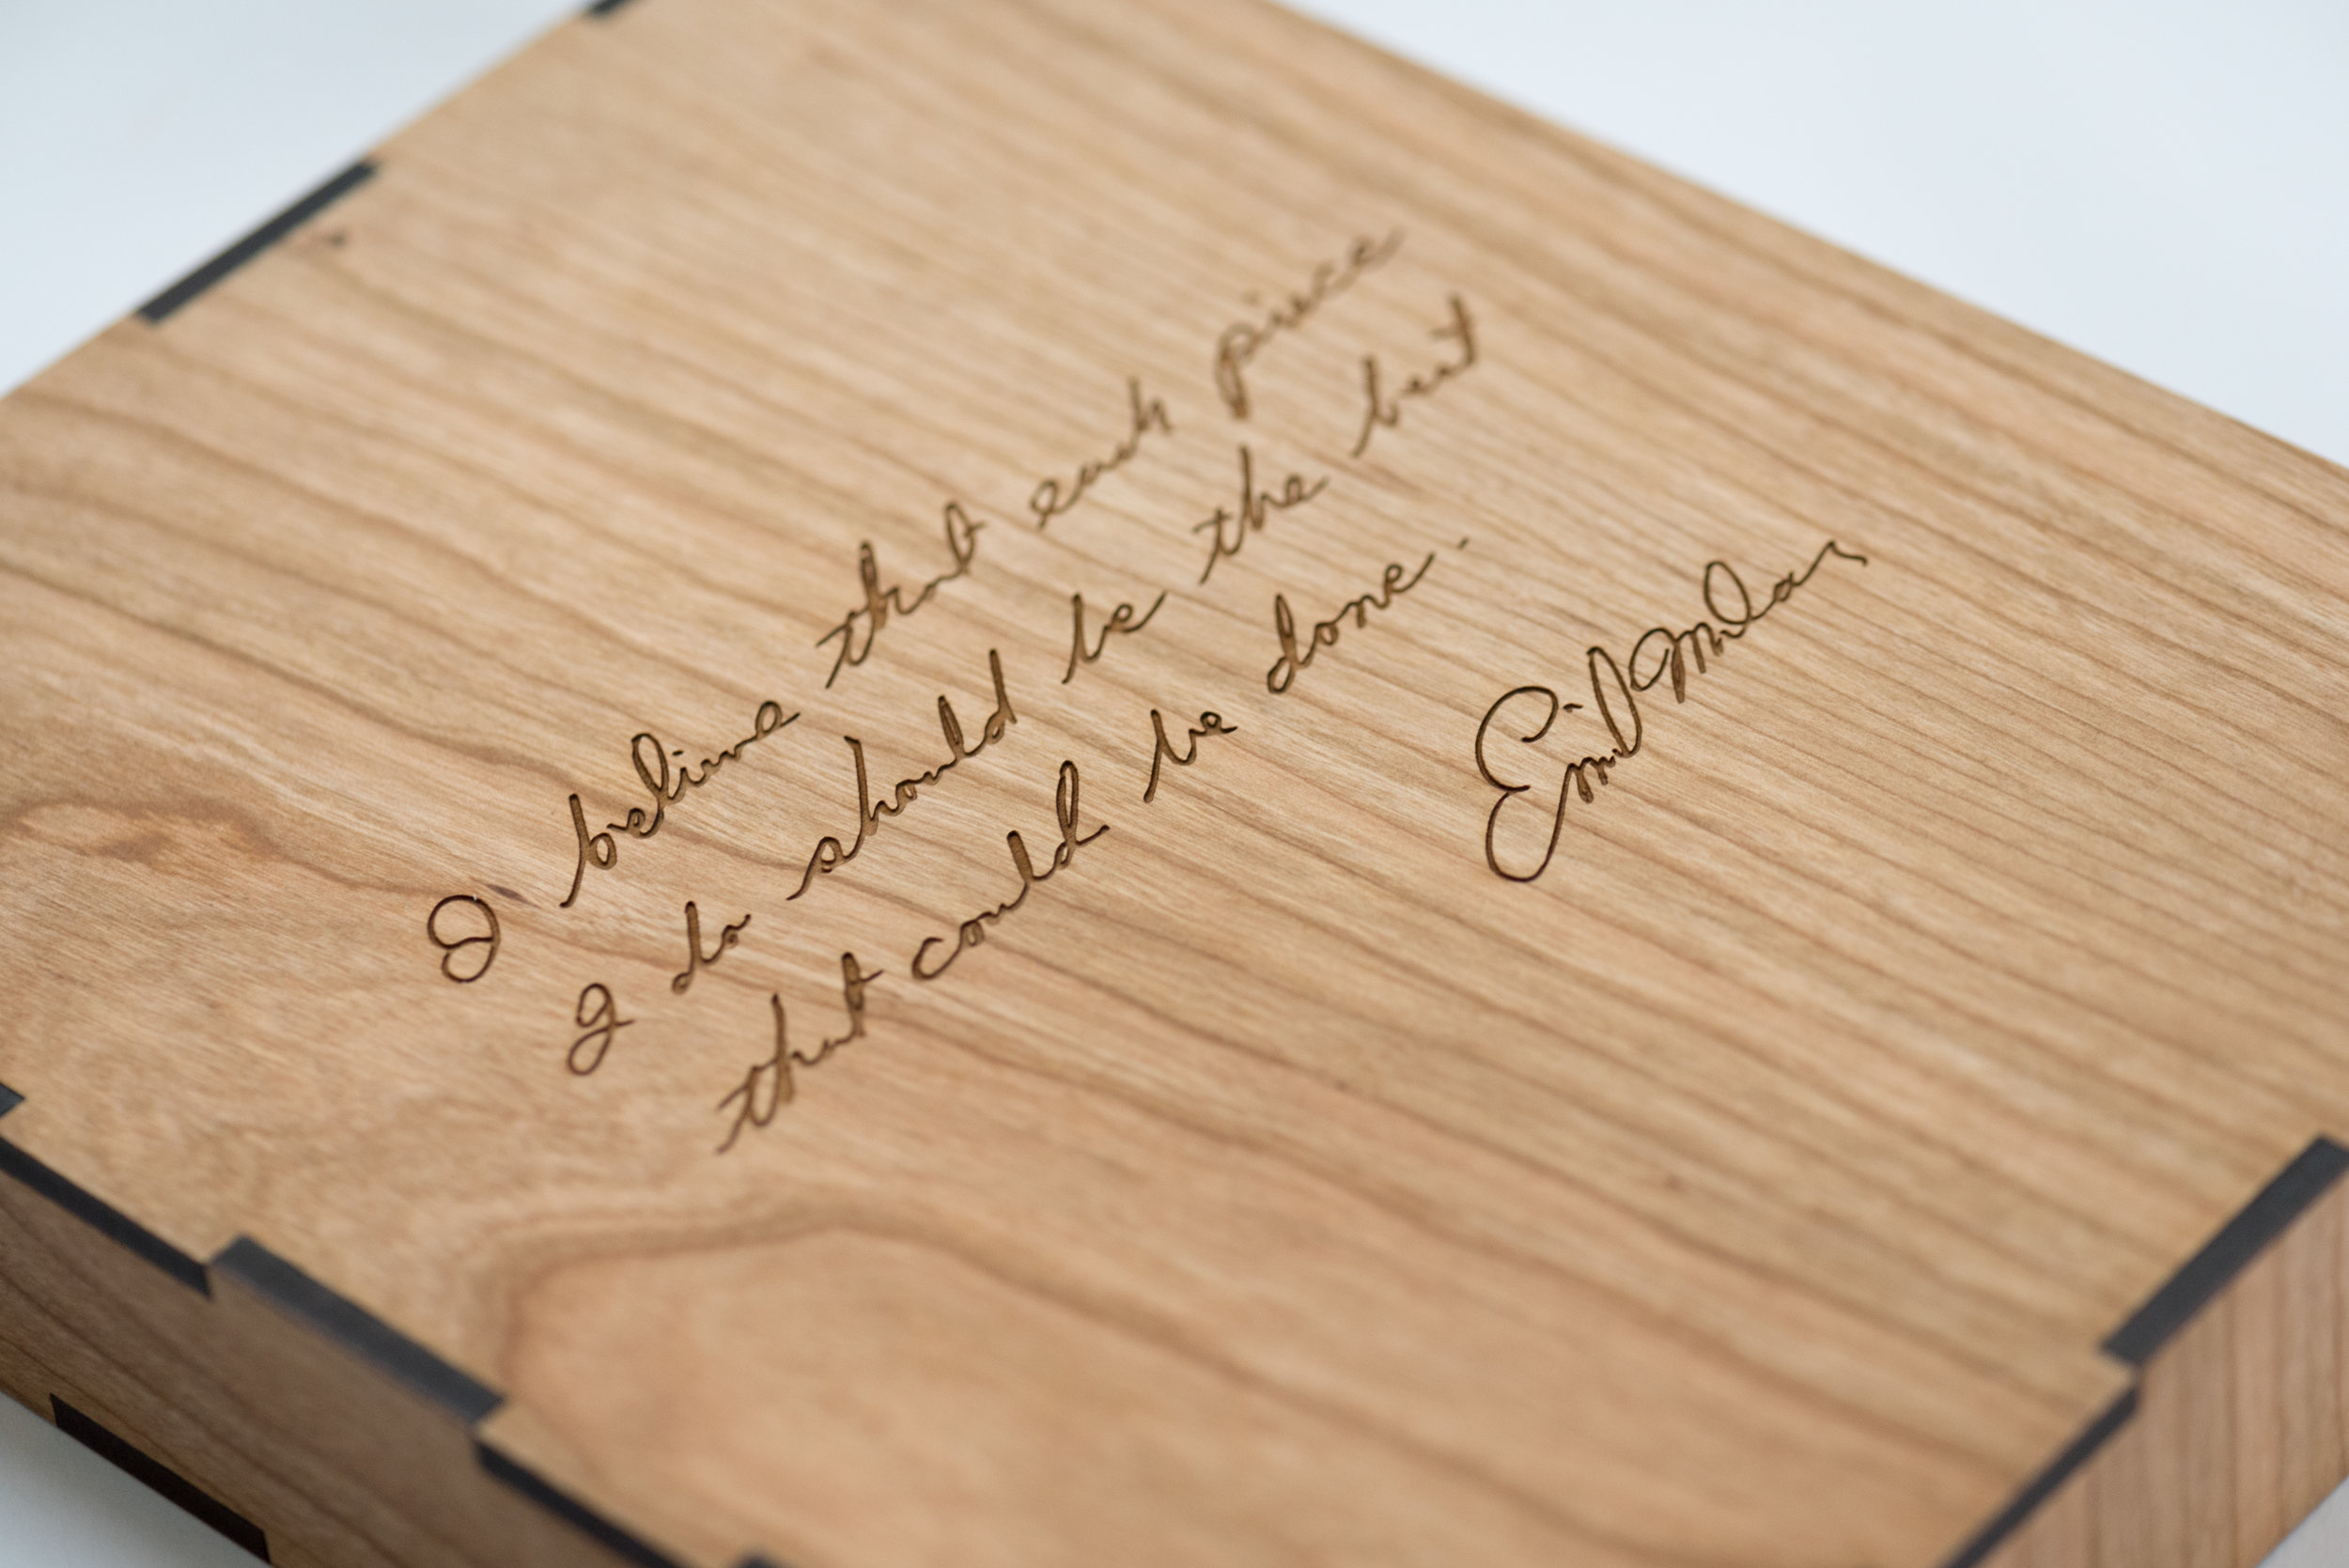 The back of the slip case is adorned with a laser-etched Emil Milan quote.